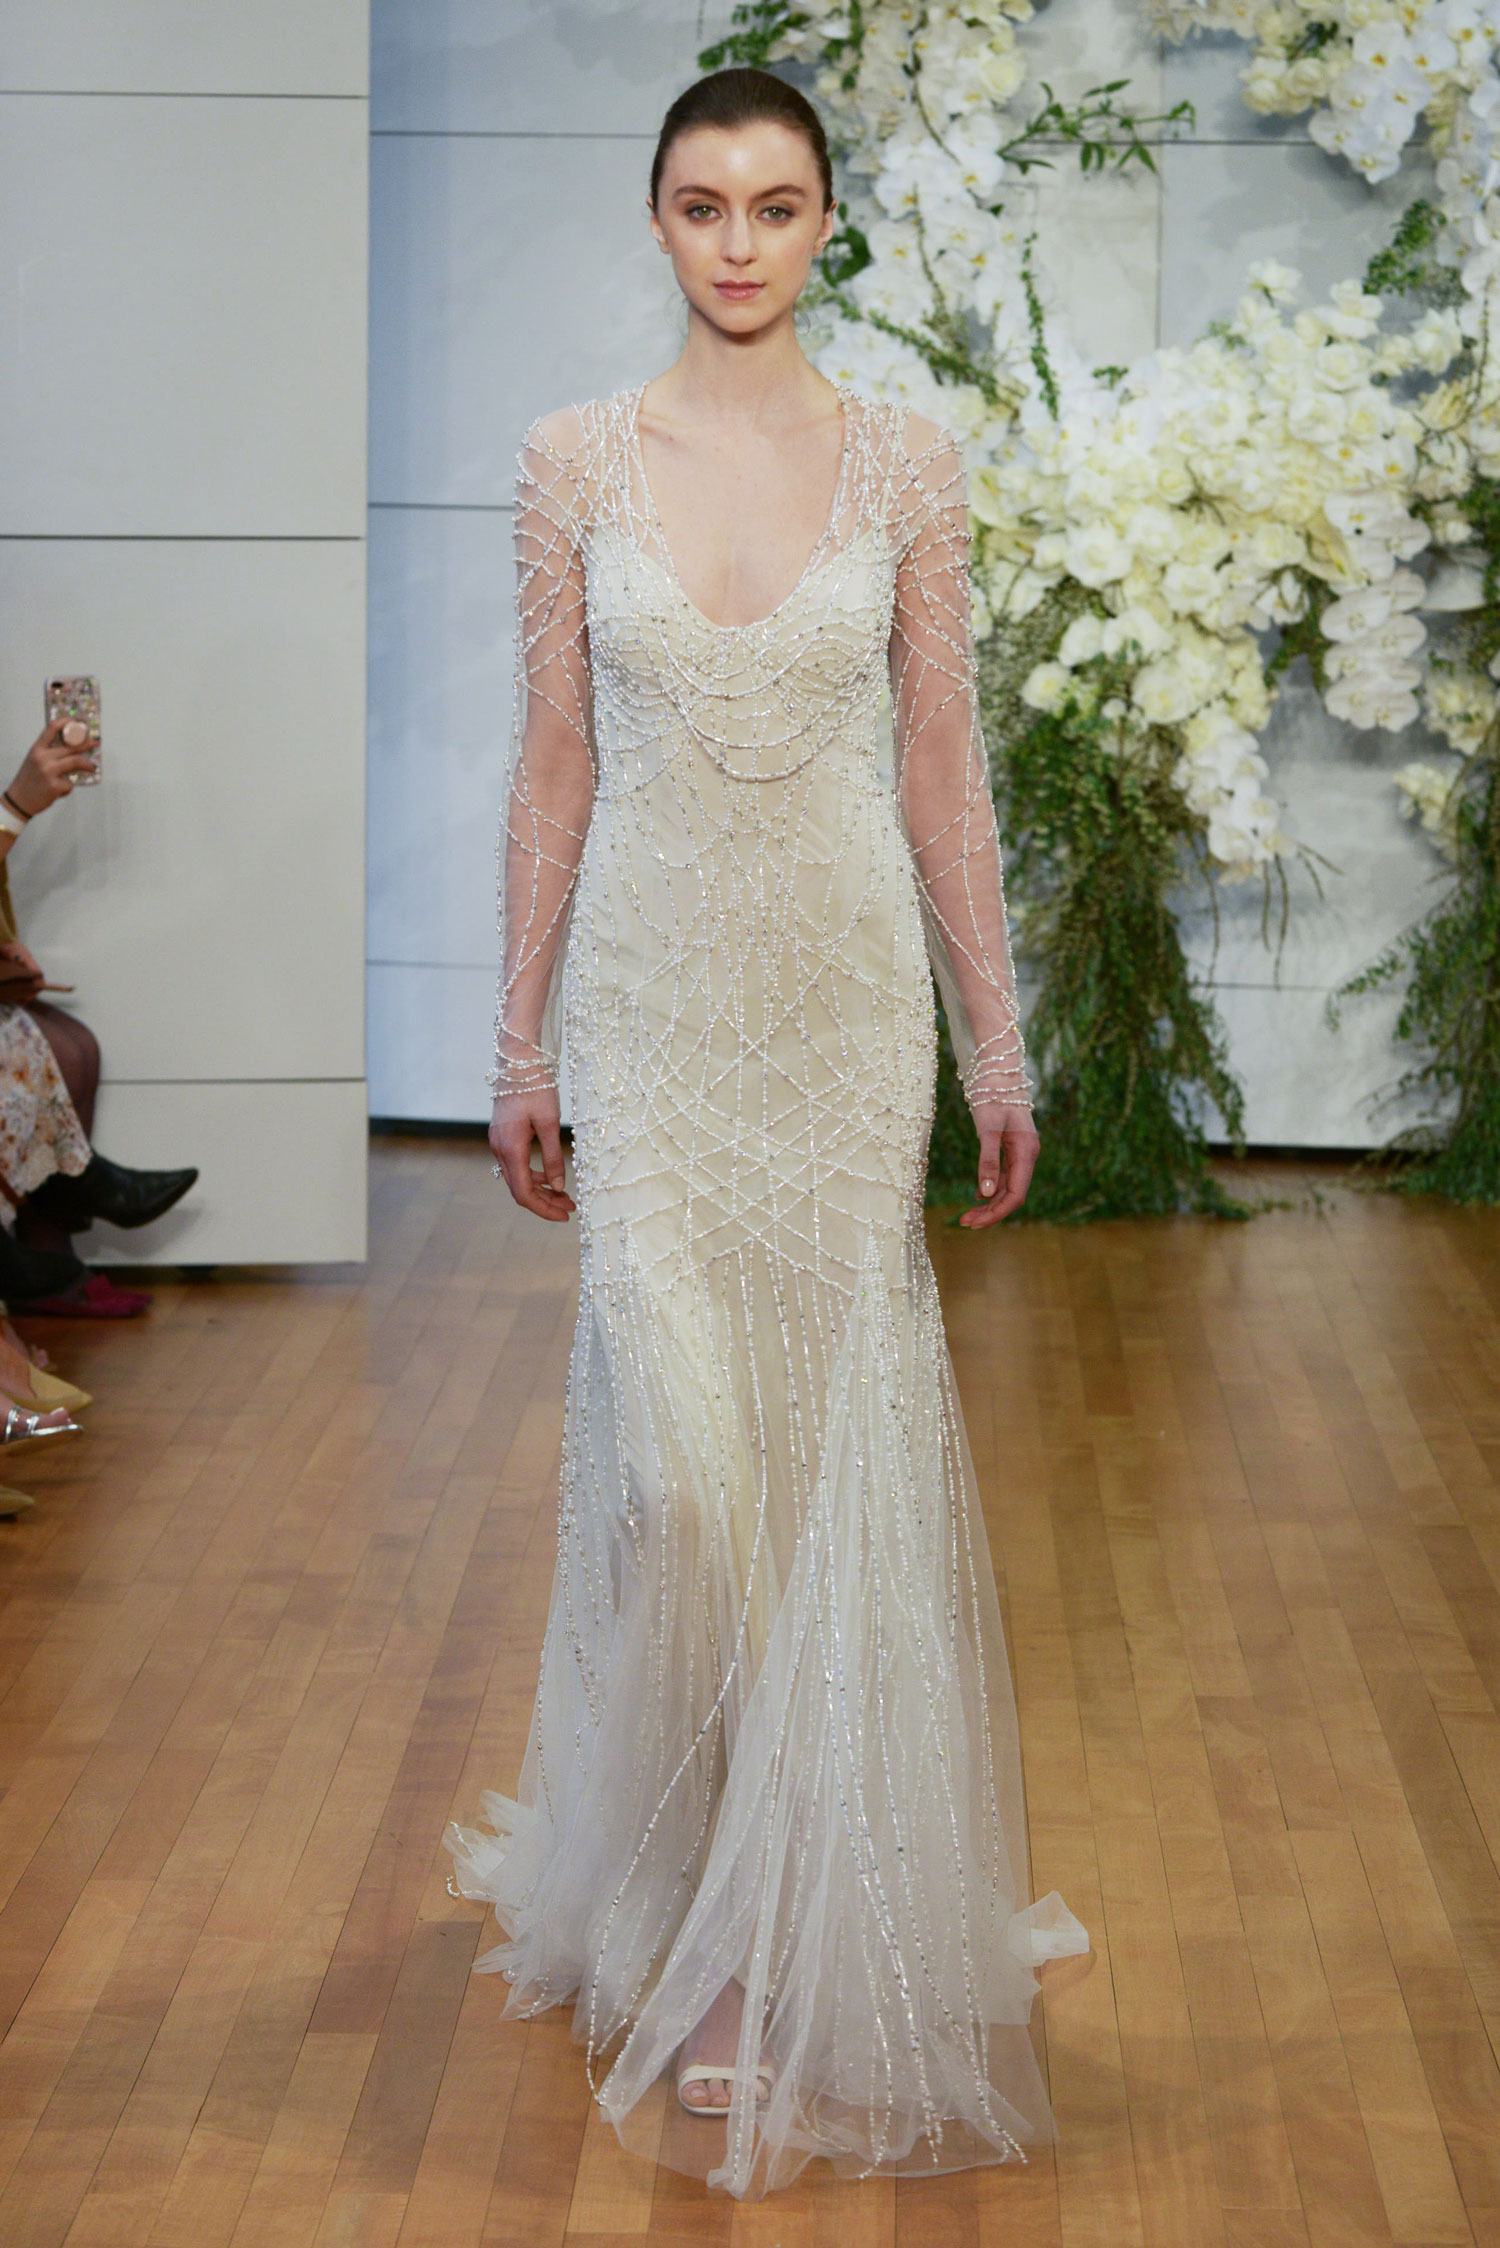 Monique Lhuillier Spring 2018 Samantha - Inside Weddings